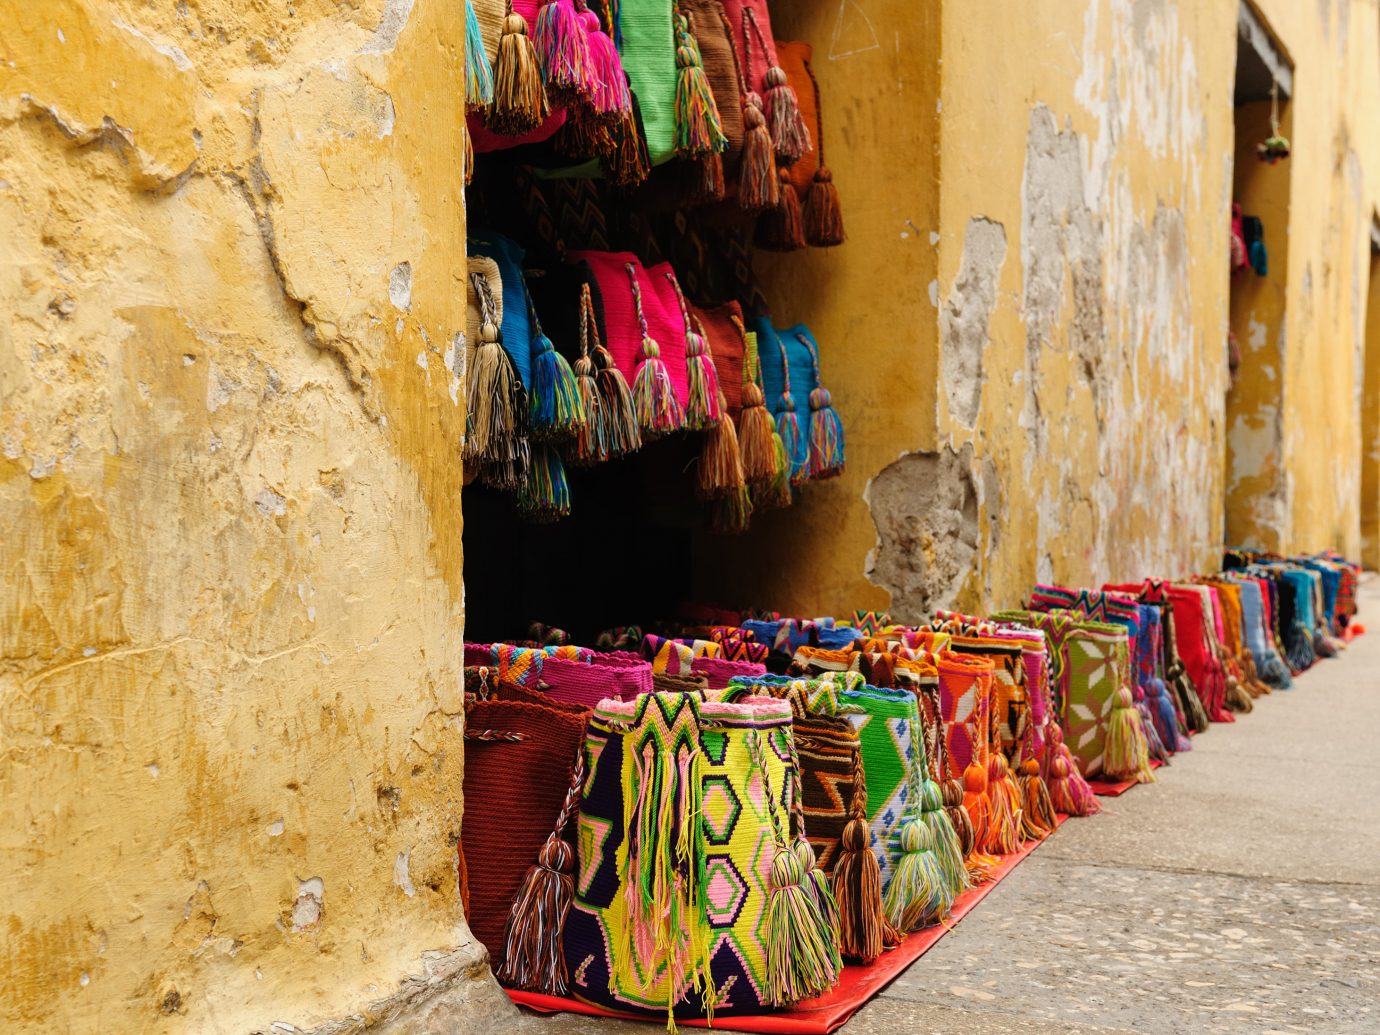 Travel Tips Trip Ideas color red outdoor yellow wall art colorful street ancient history wood temple tradition travel colored bright painted